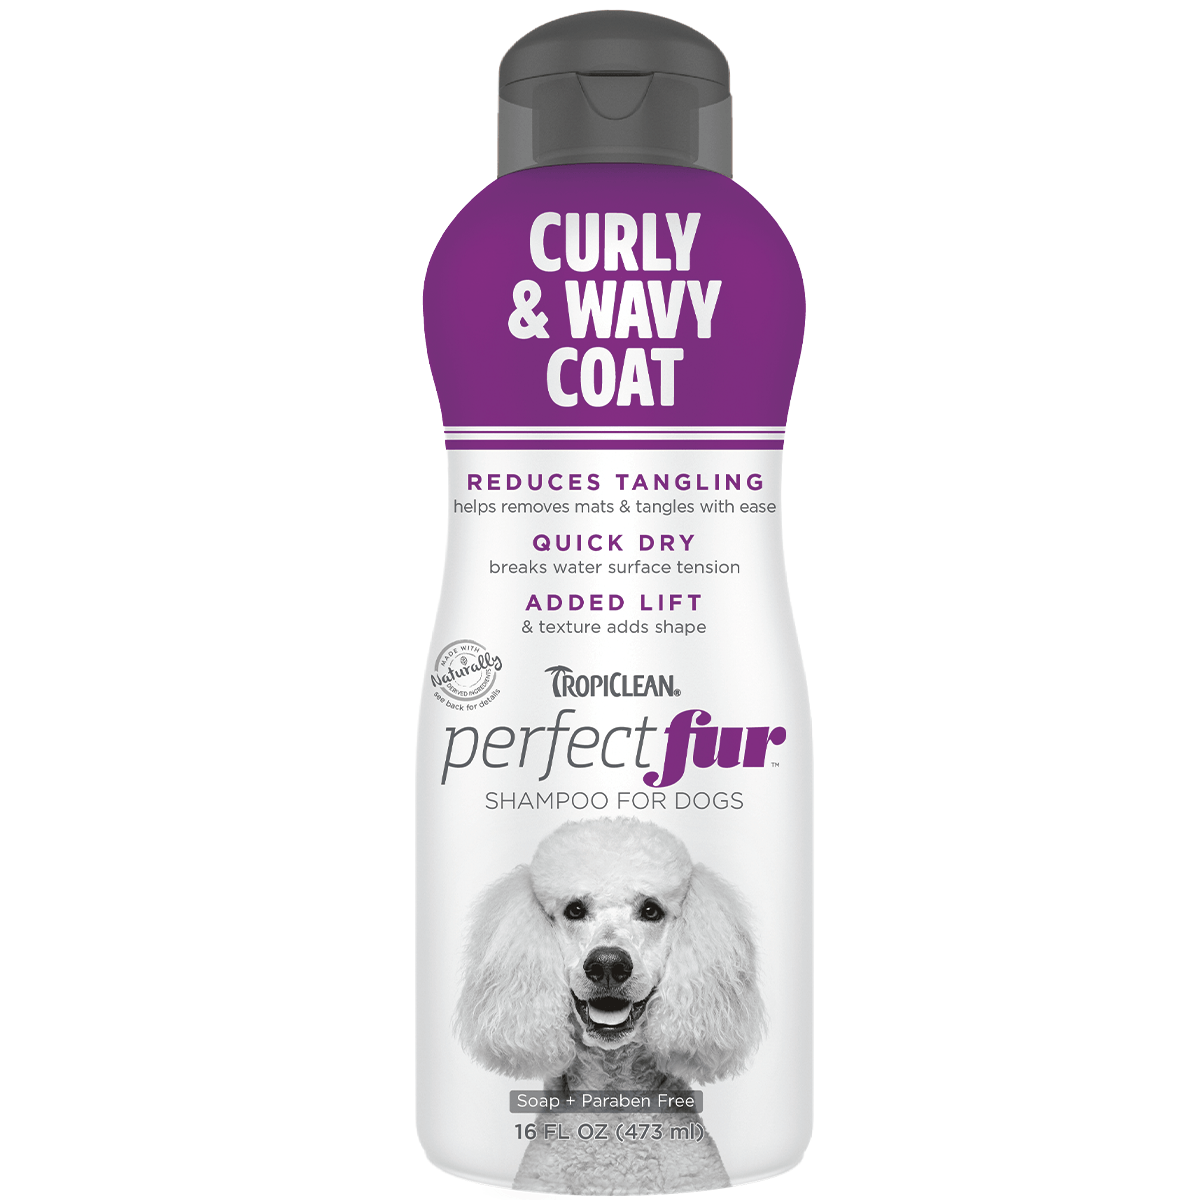 TropiClean Perfect Fur Curly & Wavy Coat Shampoo for Dogs